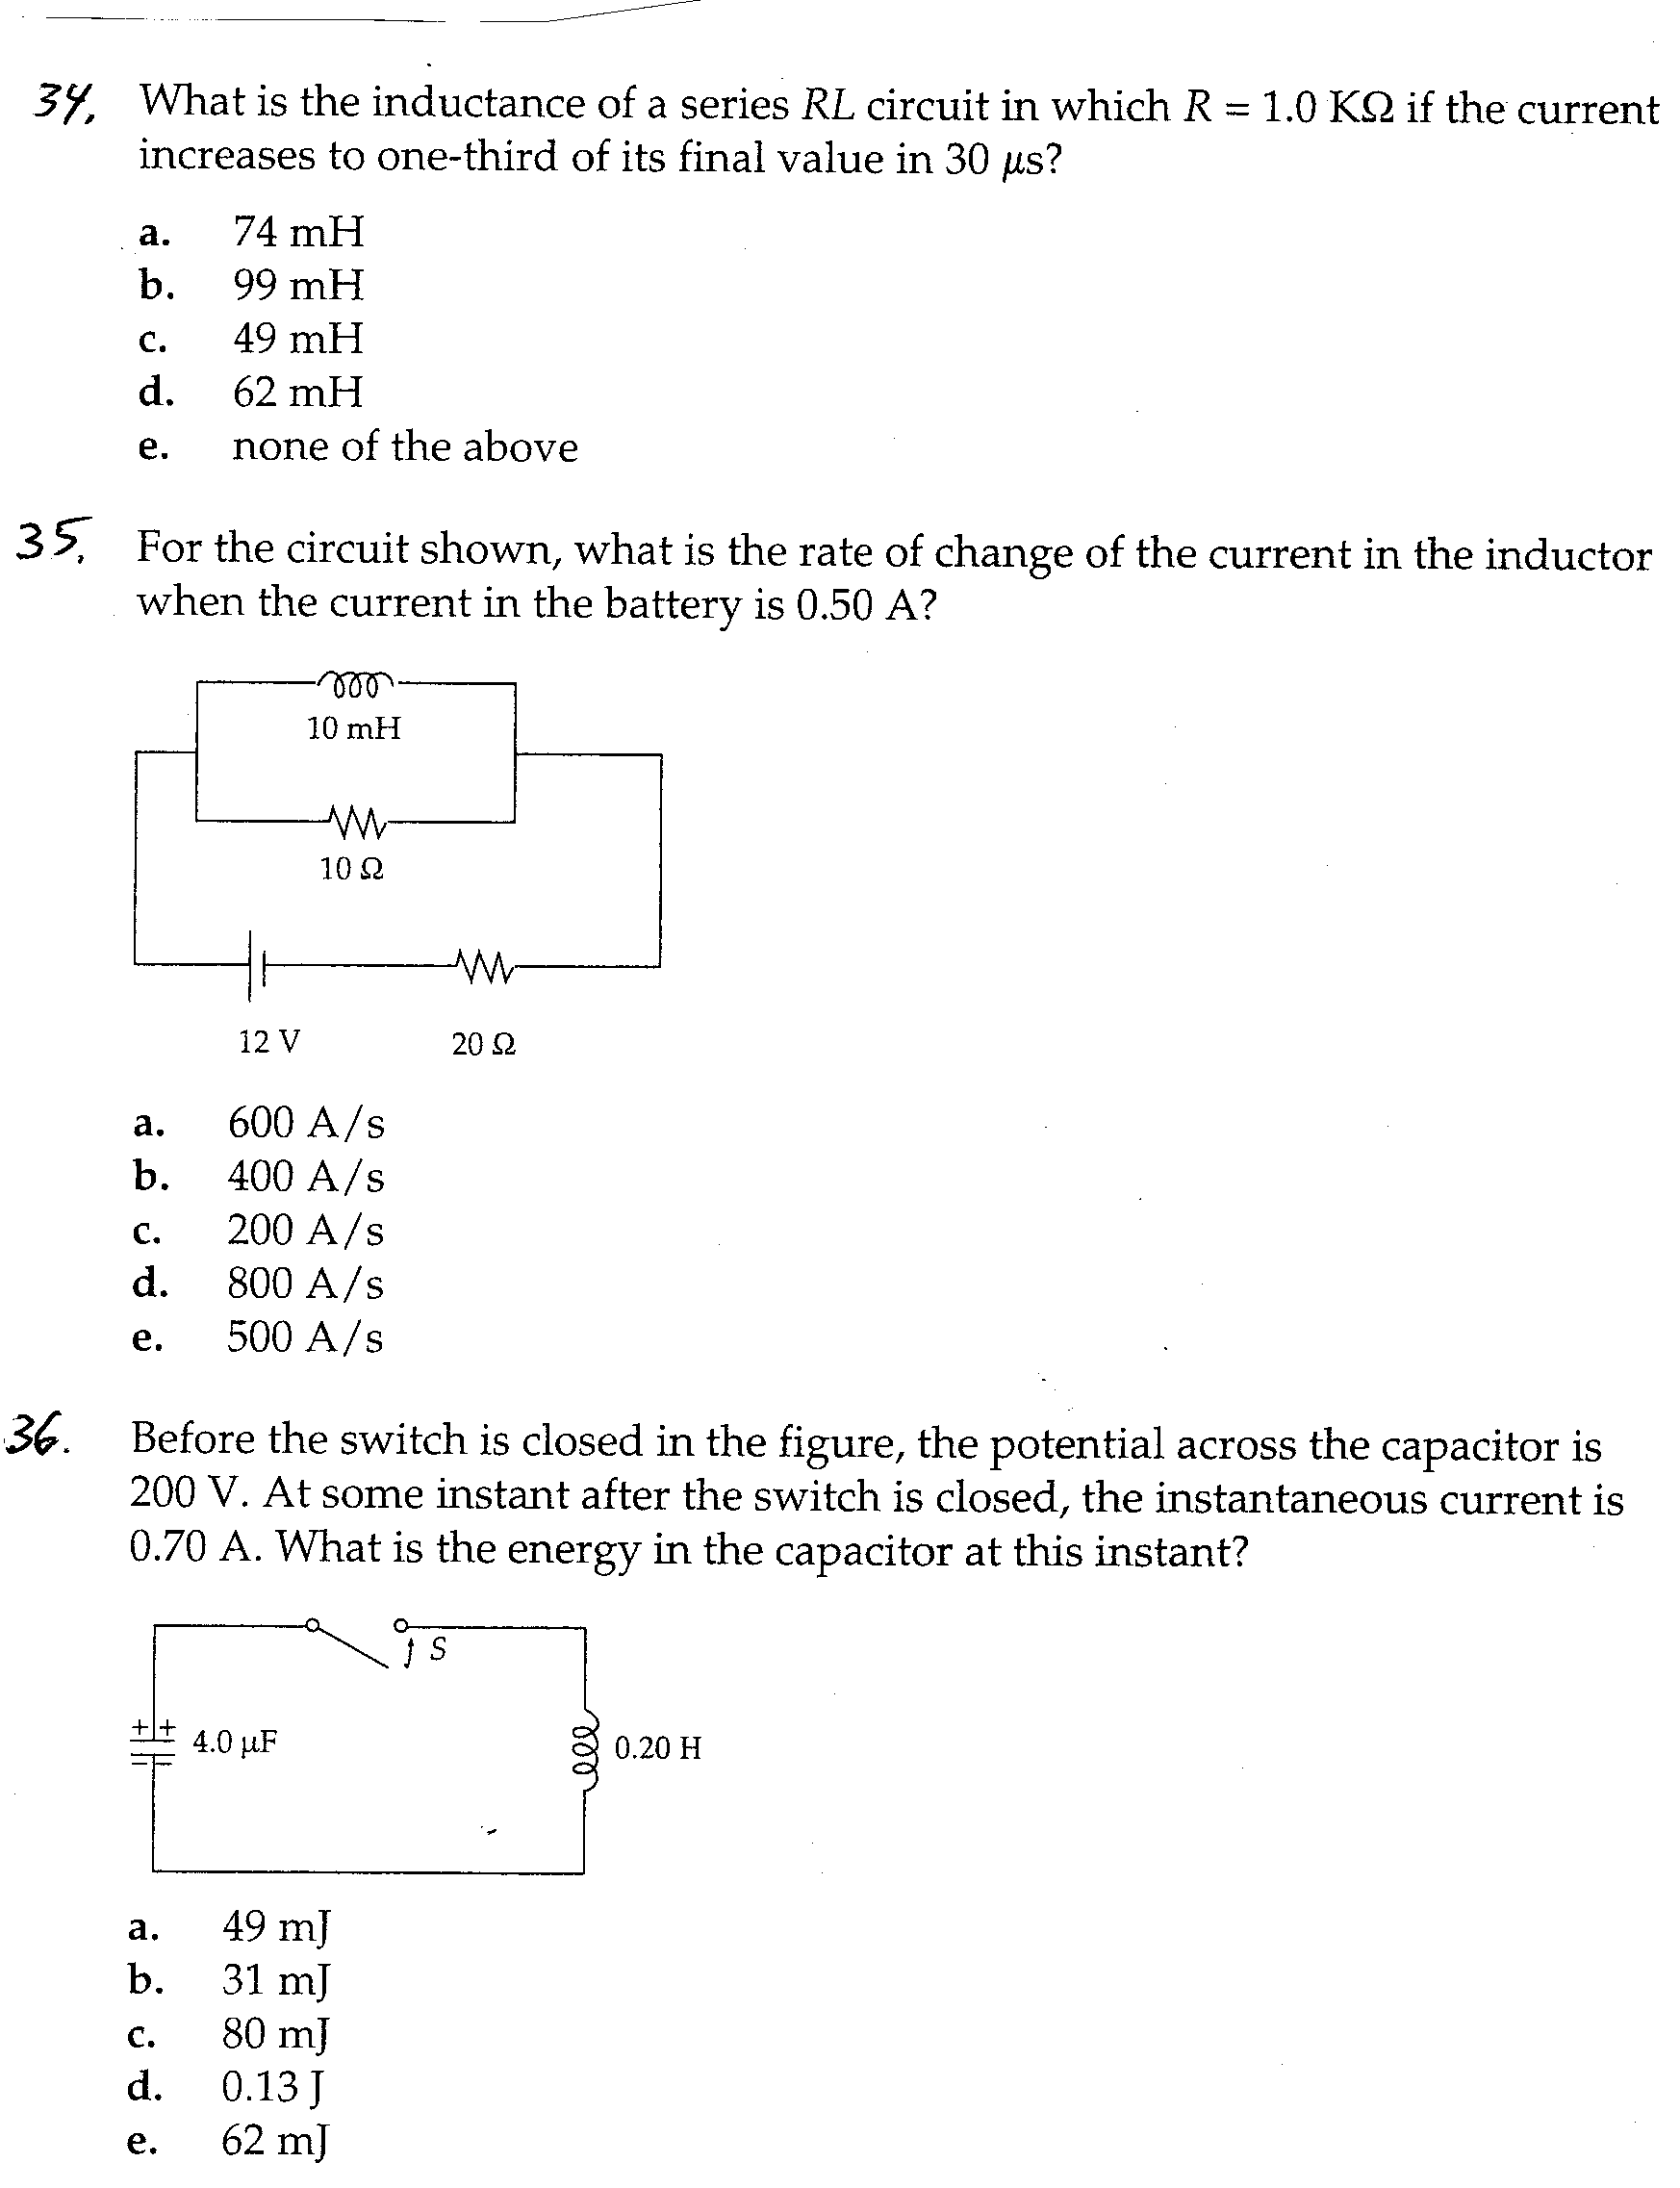 What is the inductance of a series RL circuit in w